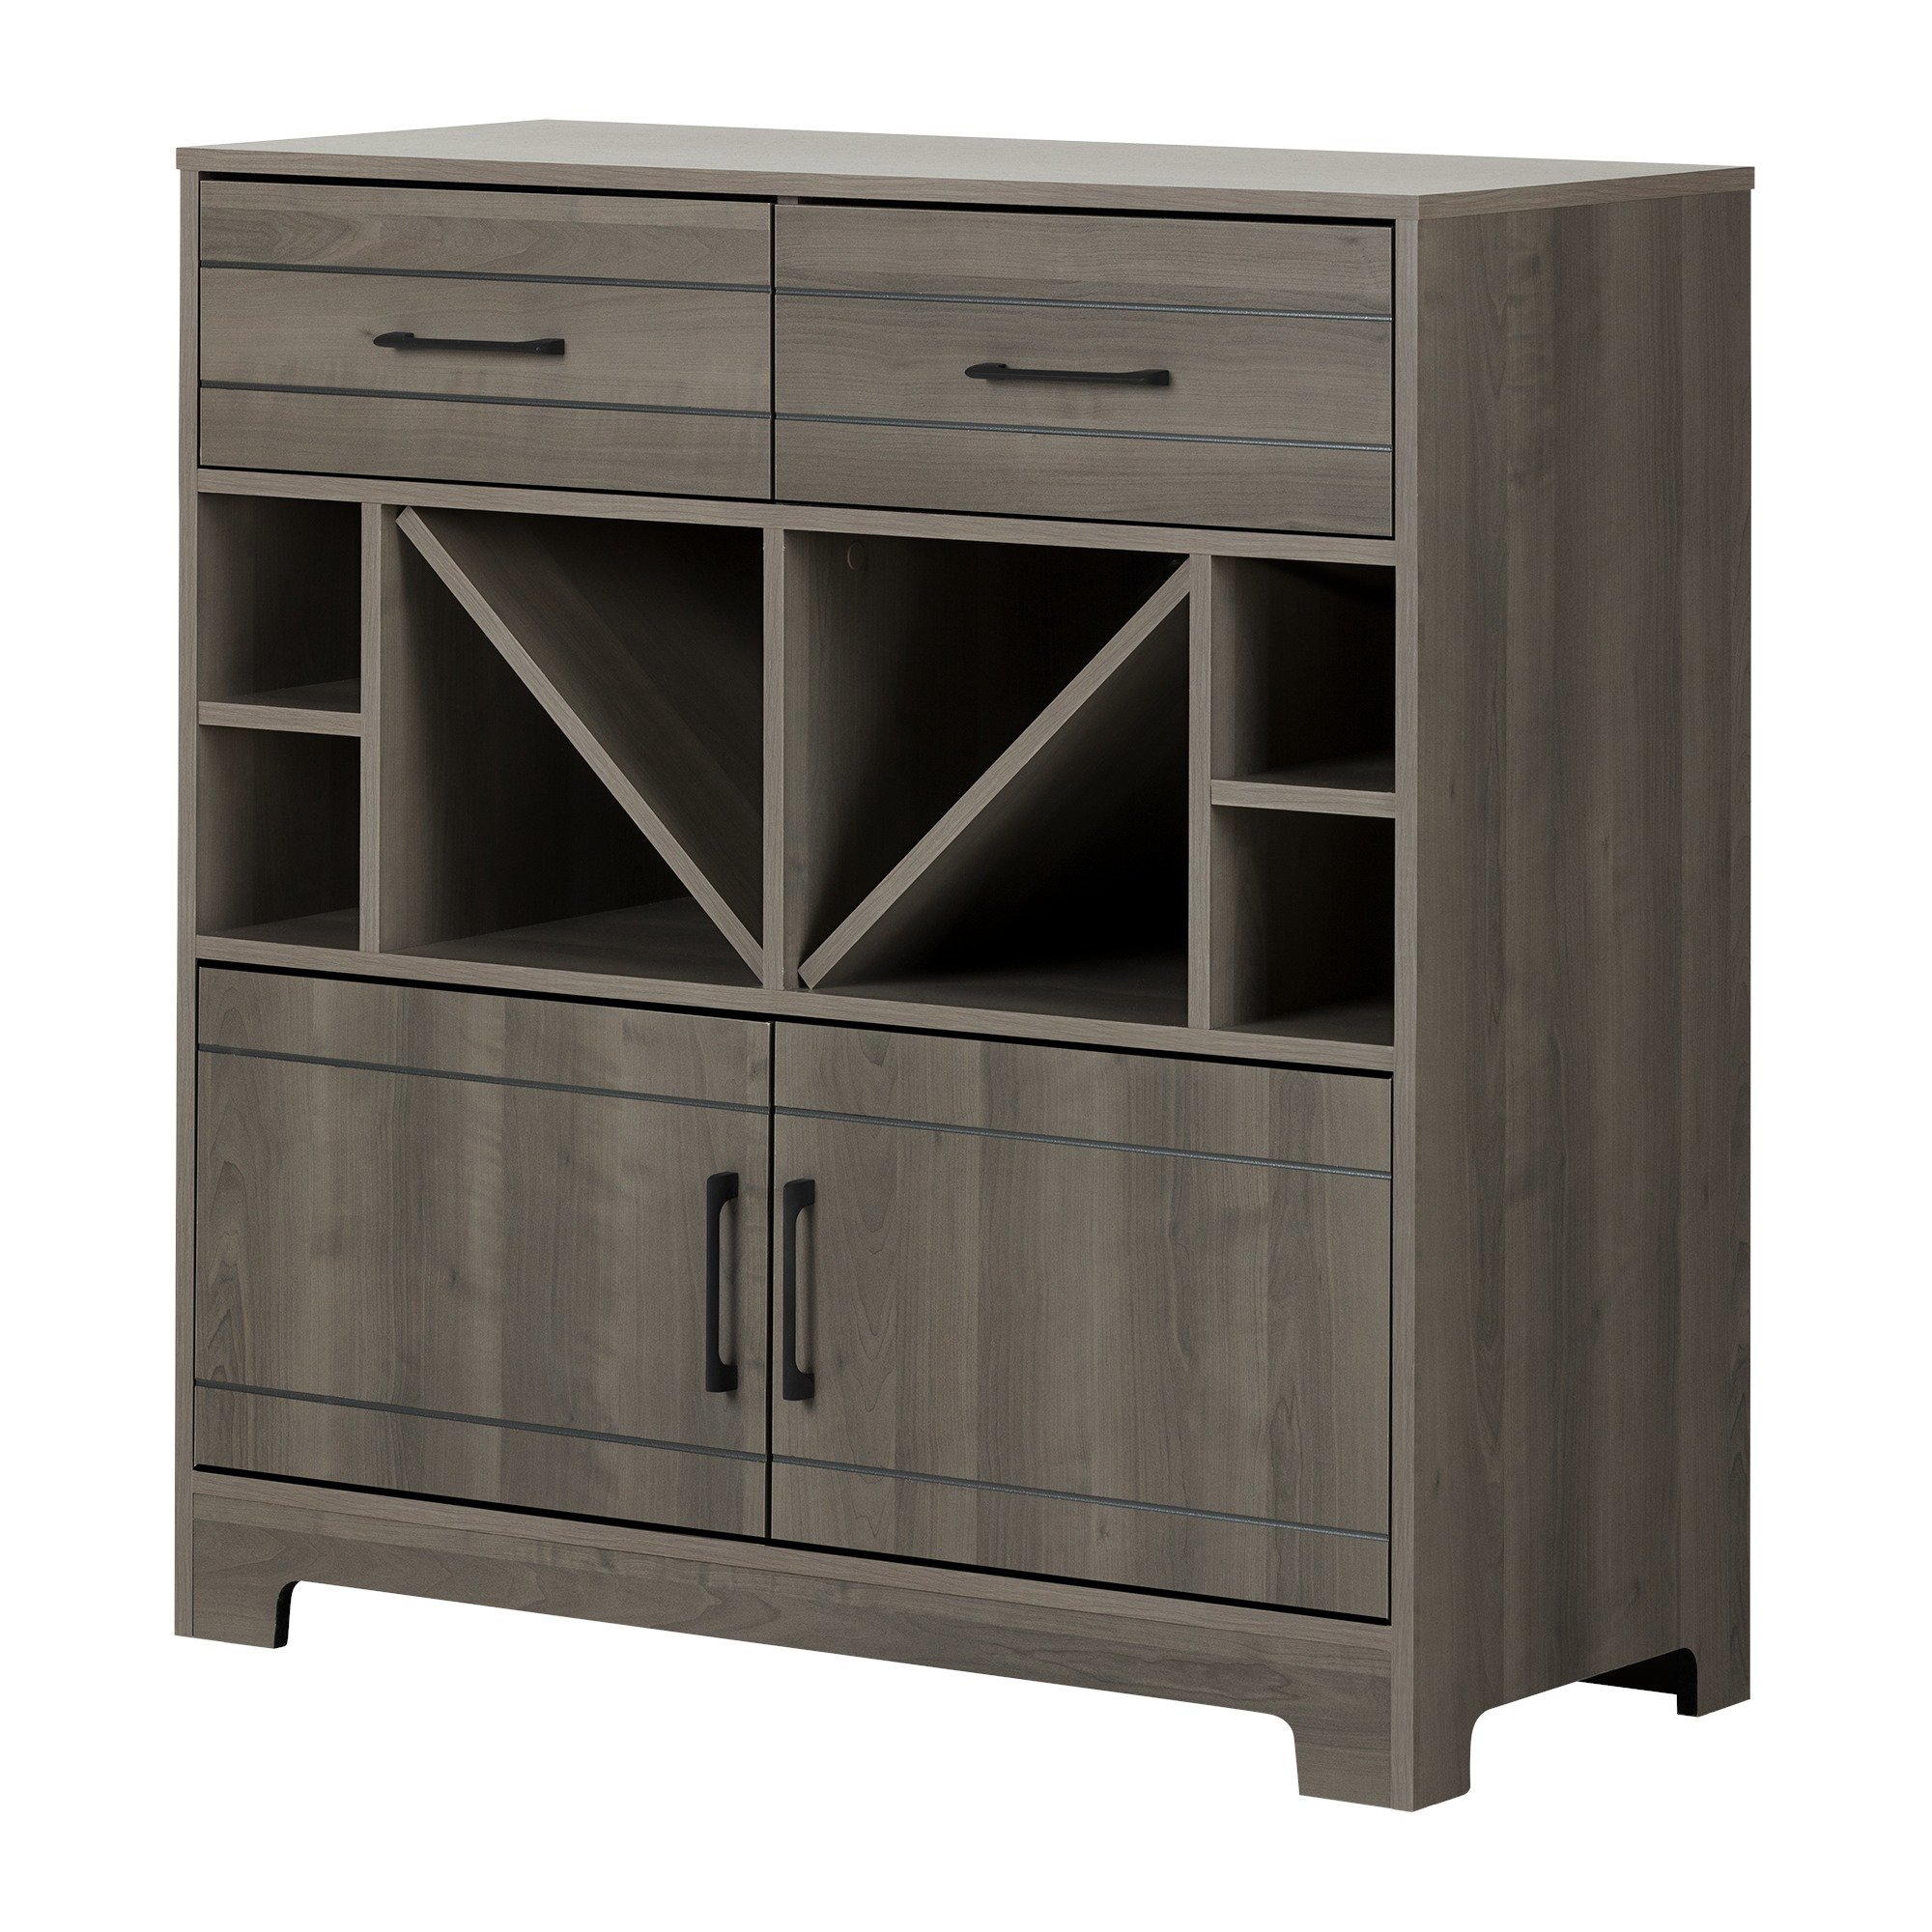 South Shore Vietti Bar Cabinet with Liquor and Wine Bottle Storage with Drawers, Gray Maple with Metal Handles by South Shore